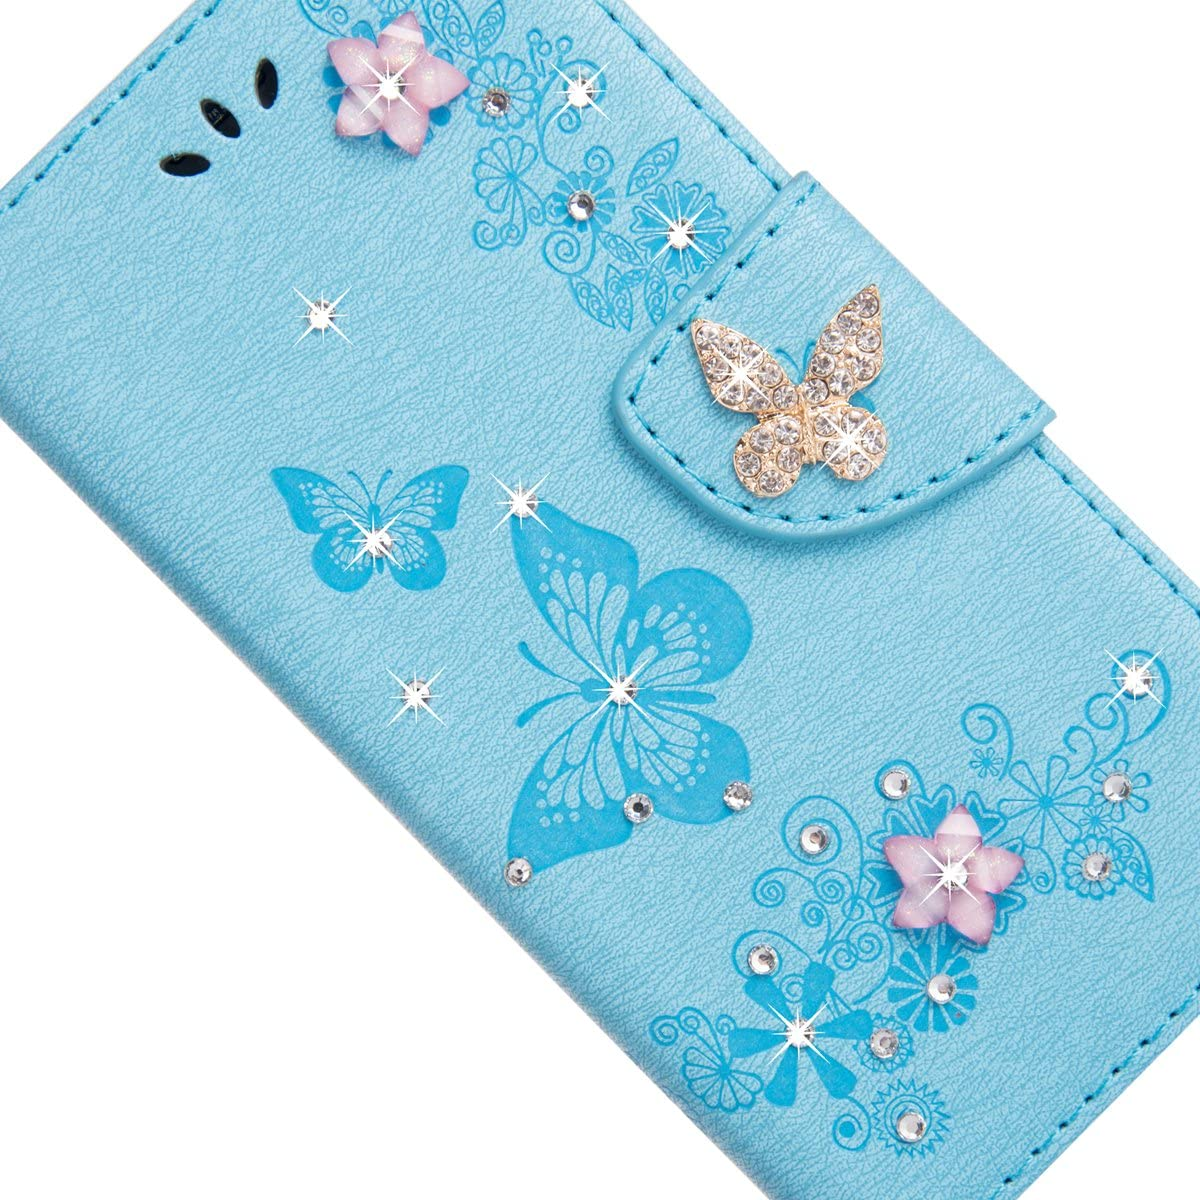 ,Mo-Beauty Floral Bling Sparkly Diamonds Butterfly Pattern Design PU Leather Flip Wallet Case Cover For Samsung Galaxy S8 Free Tempered Glass Screen Protector Galaxy S8 Case Grey